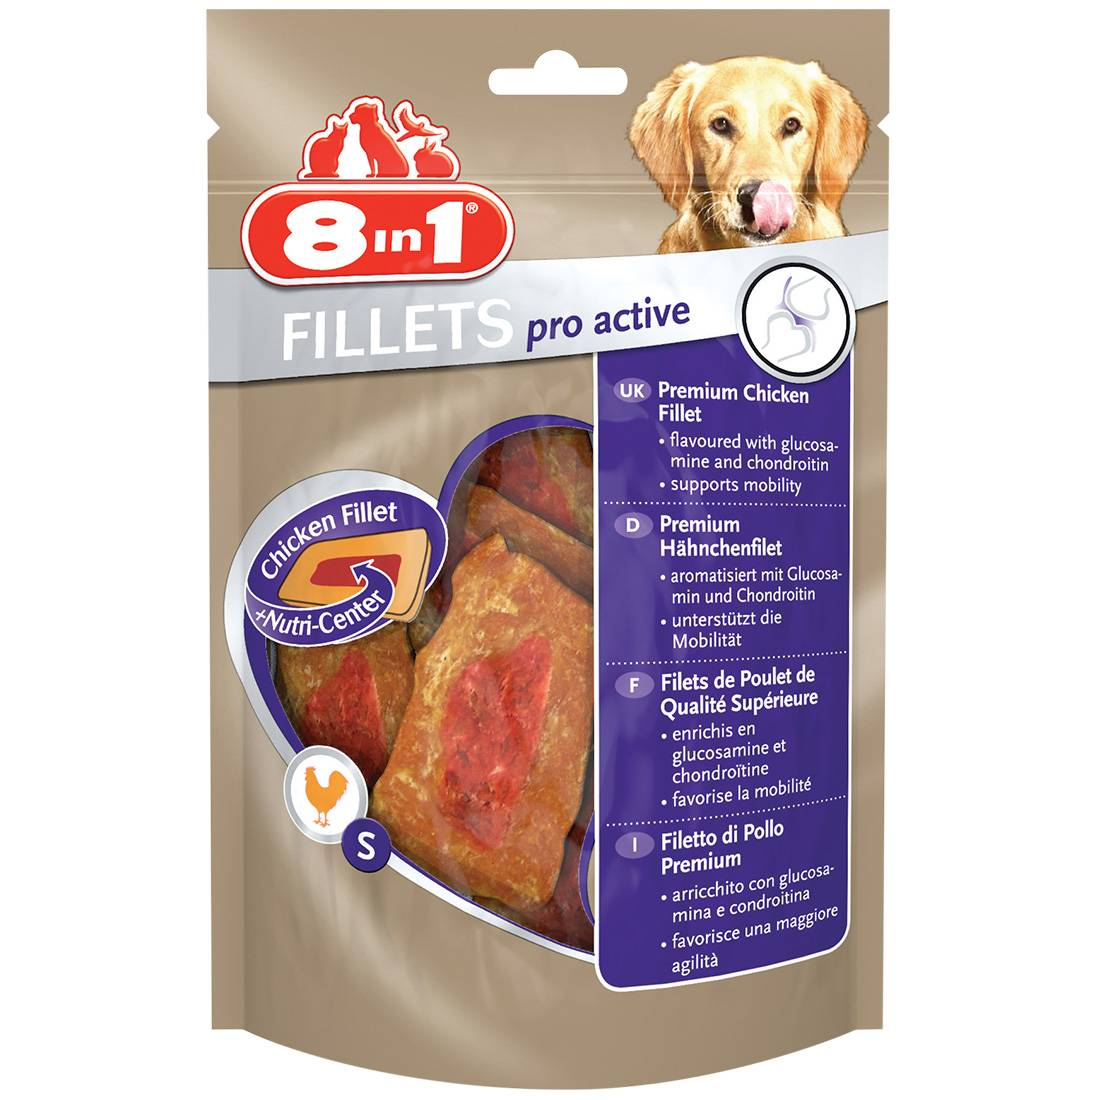 8in1 Fillets Pro Active Taille : S